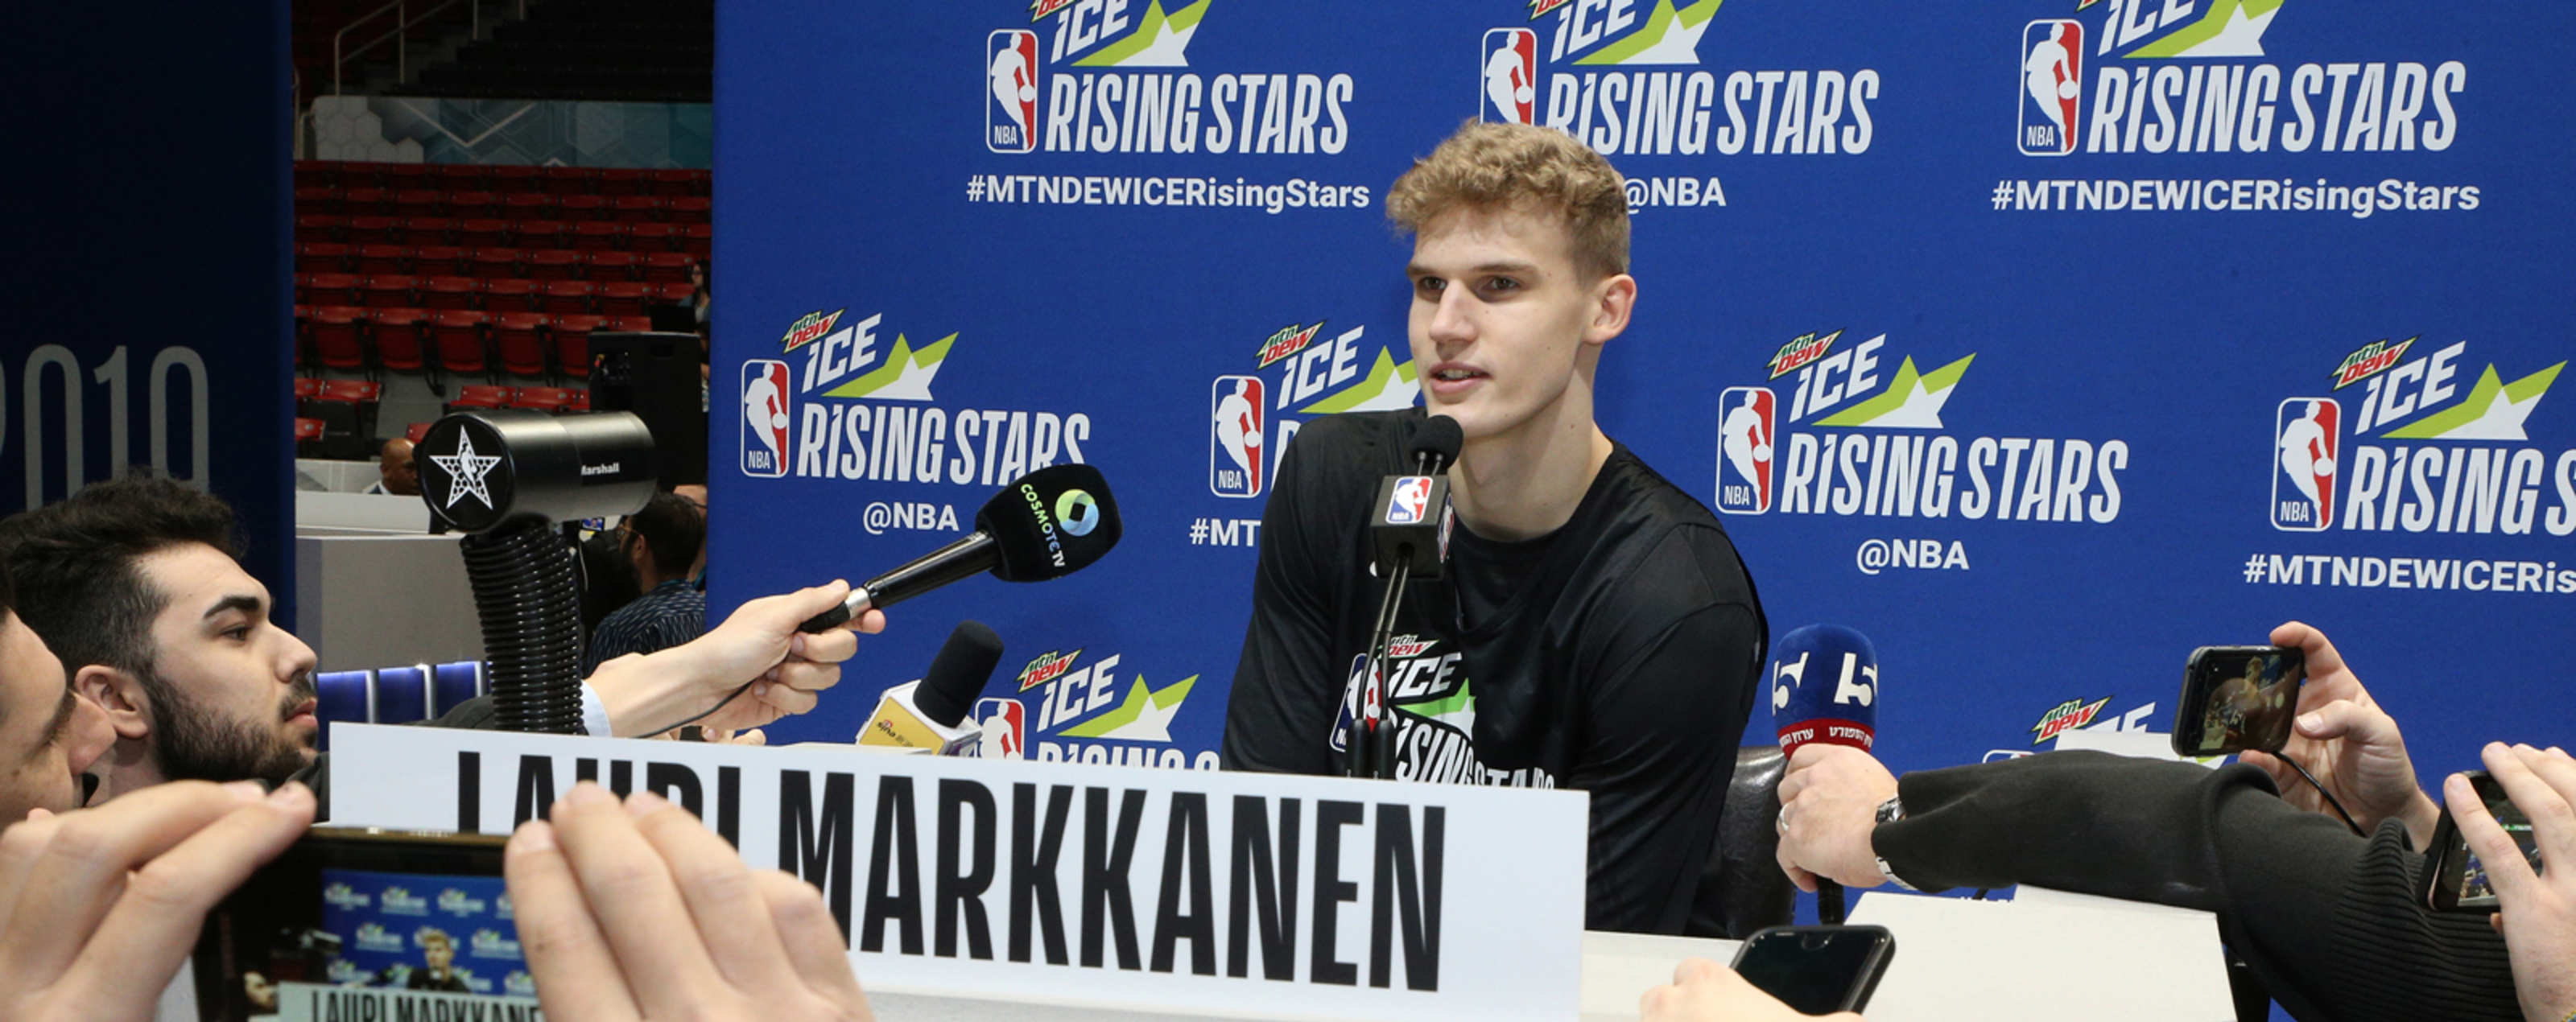 Lauri Markkanen #24 of the Chicago Bulls talks to the media during the 2019 NBA All-Star Rising Stars Practice and Media Availability on February 15, 2019 at Bojangles Coliseum in Charlotte, North Carolina.